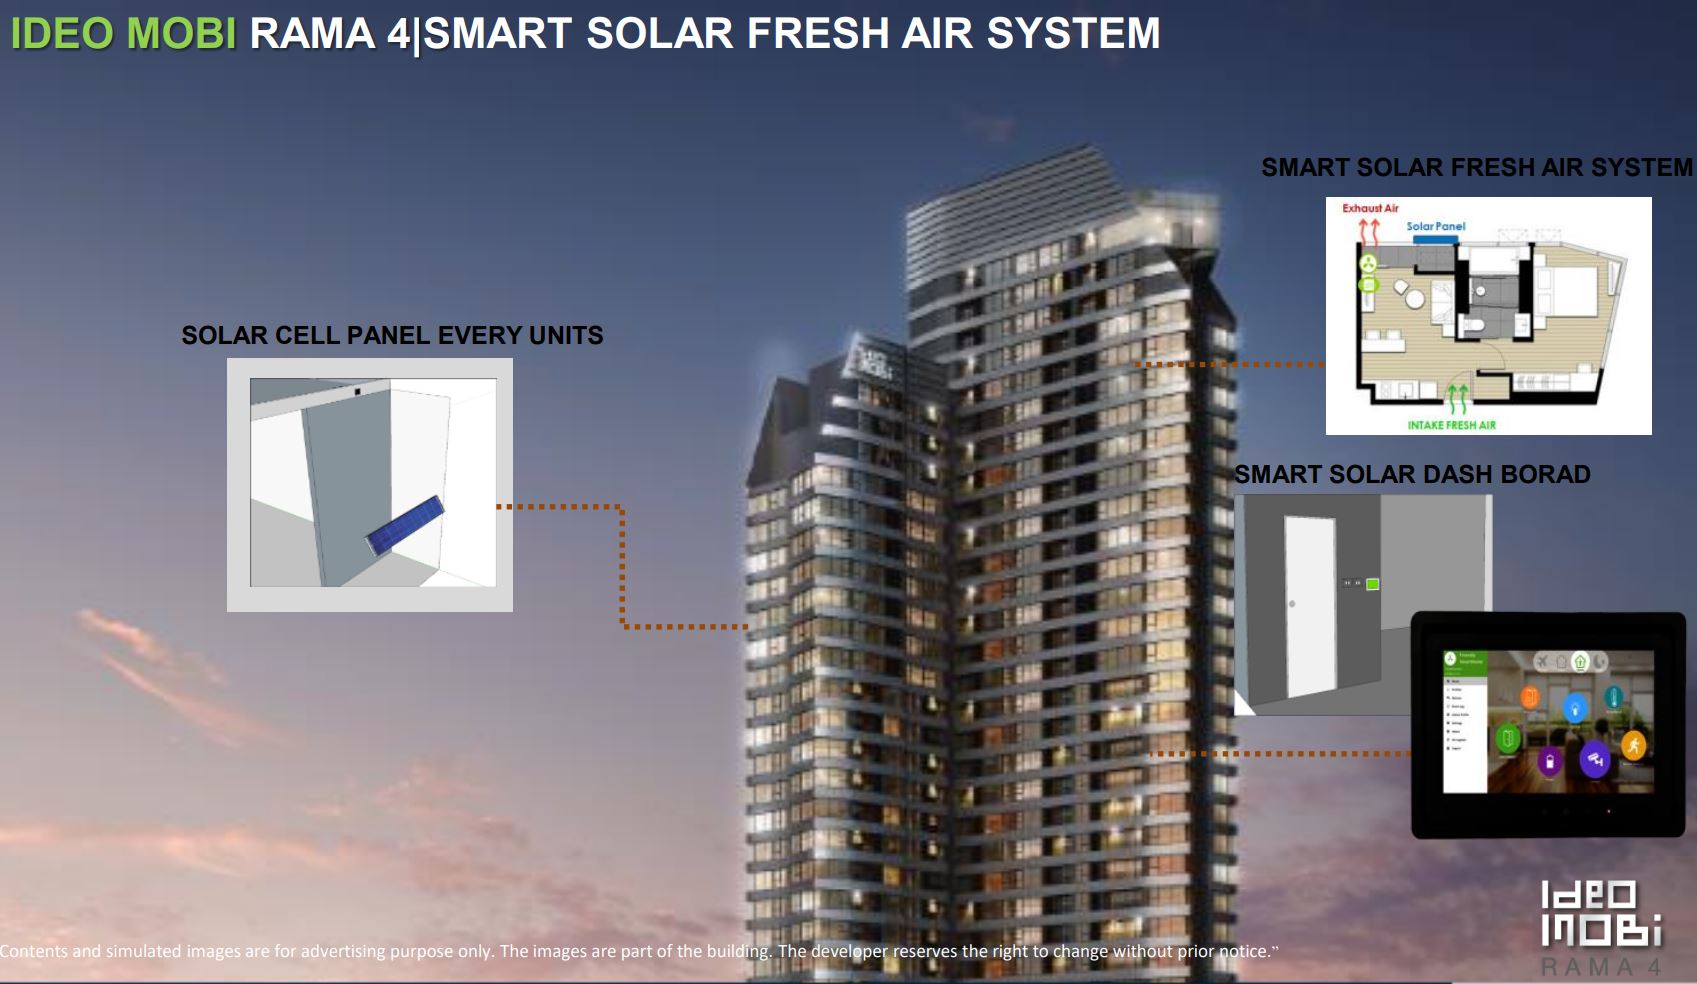 Ideo Mobi Rama 4 Smart Solar Fresh Air System